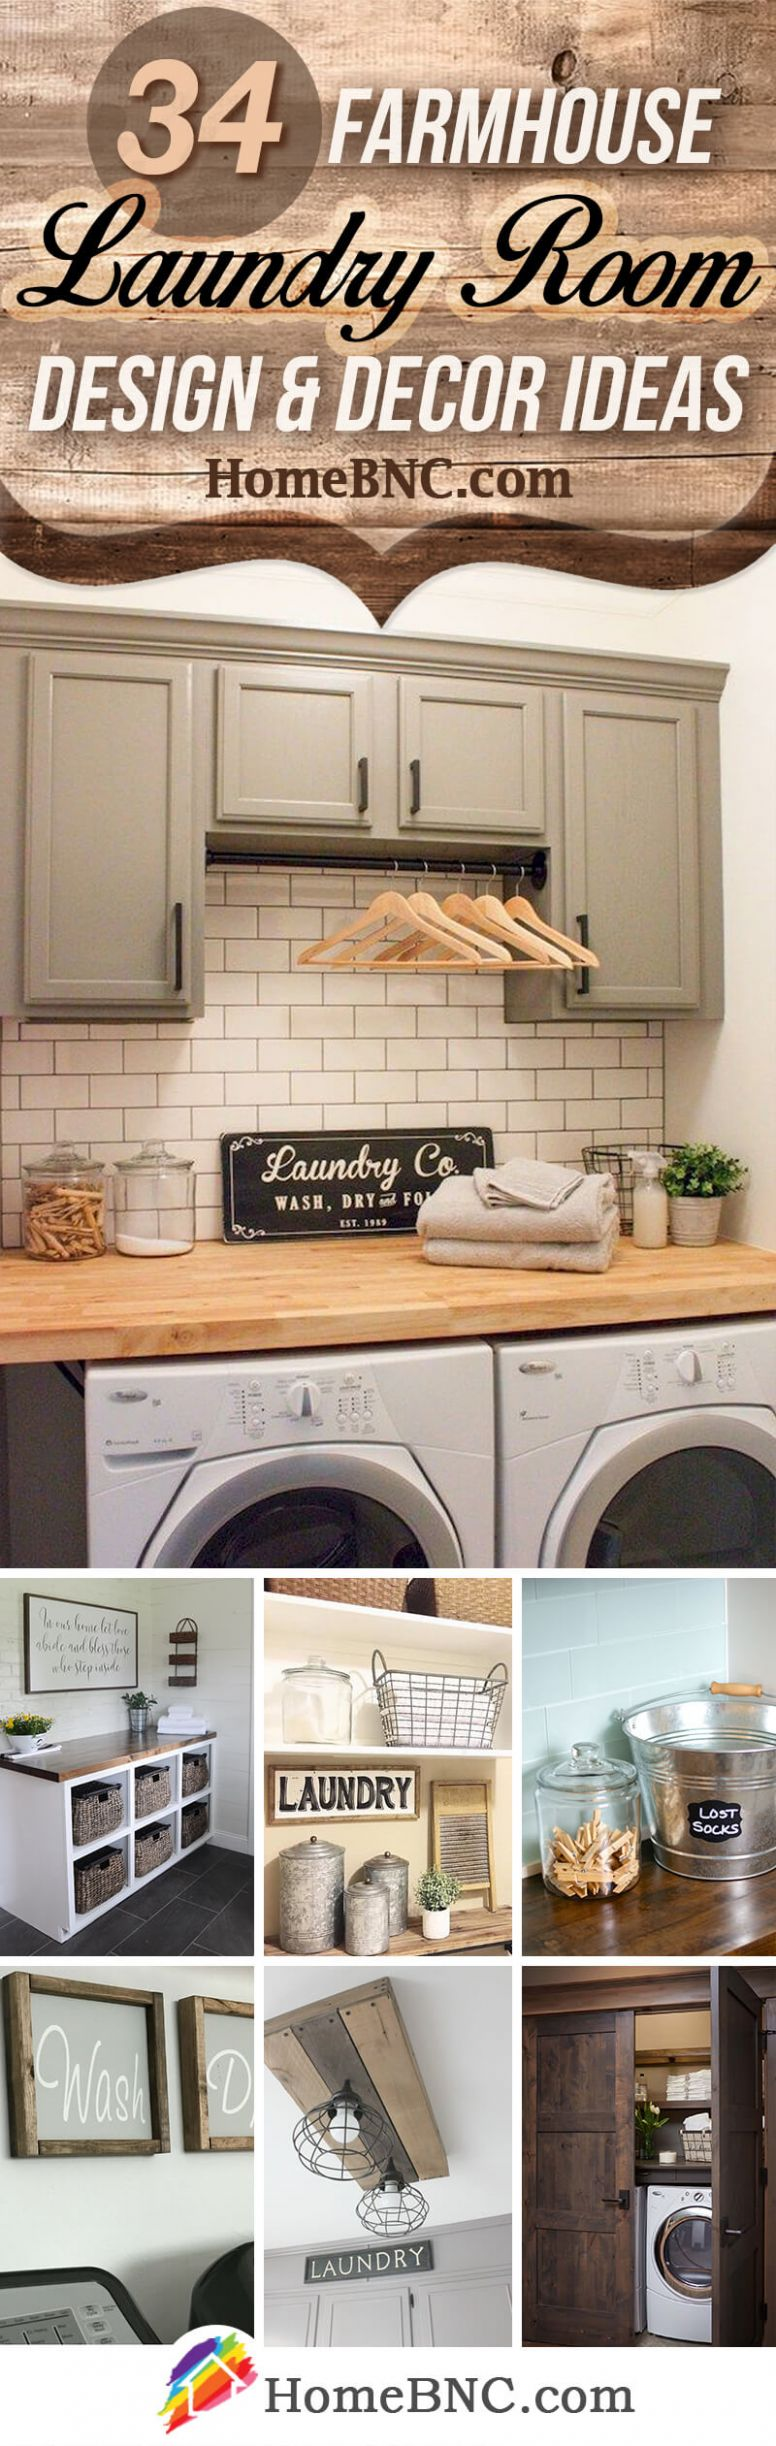 9 Best Farmhouse Laundry Room Decor Ideas and Designs for 9 - laundry room ideas decor